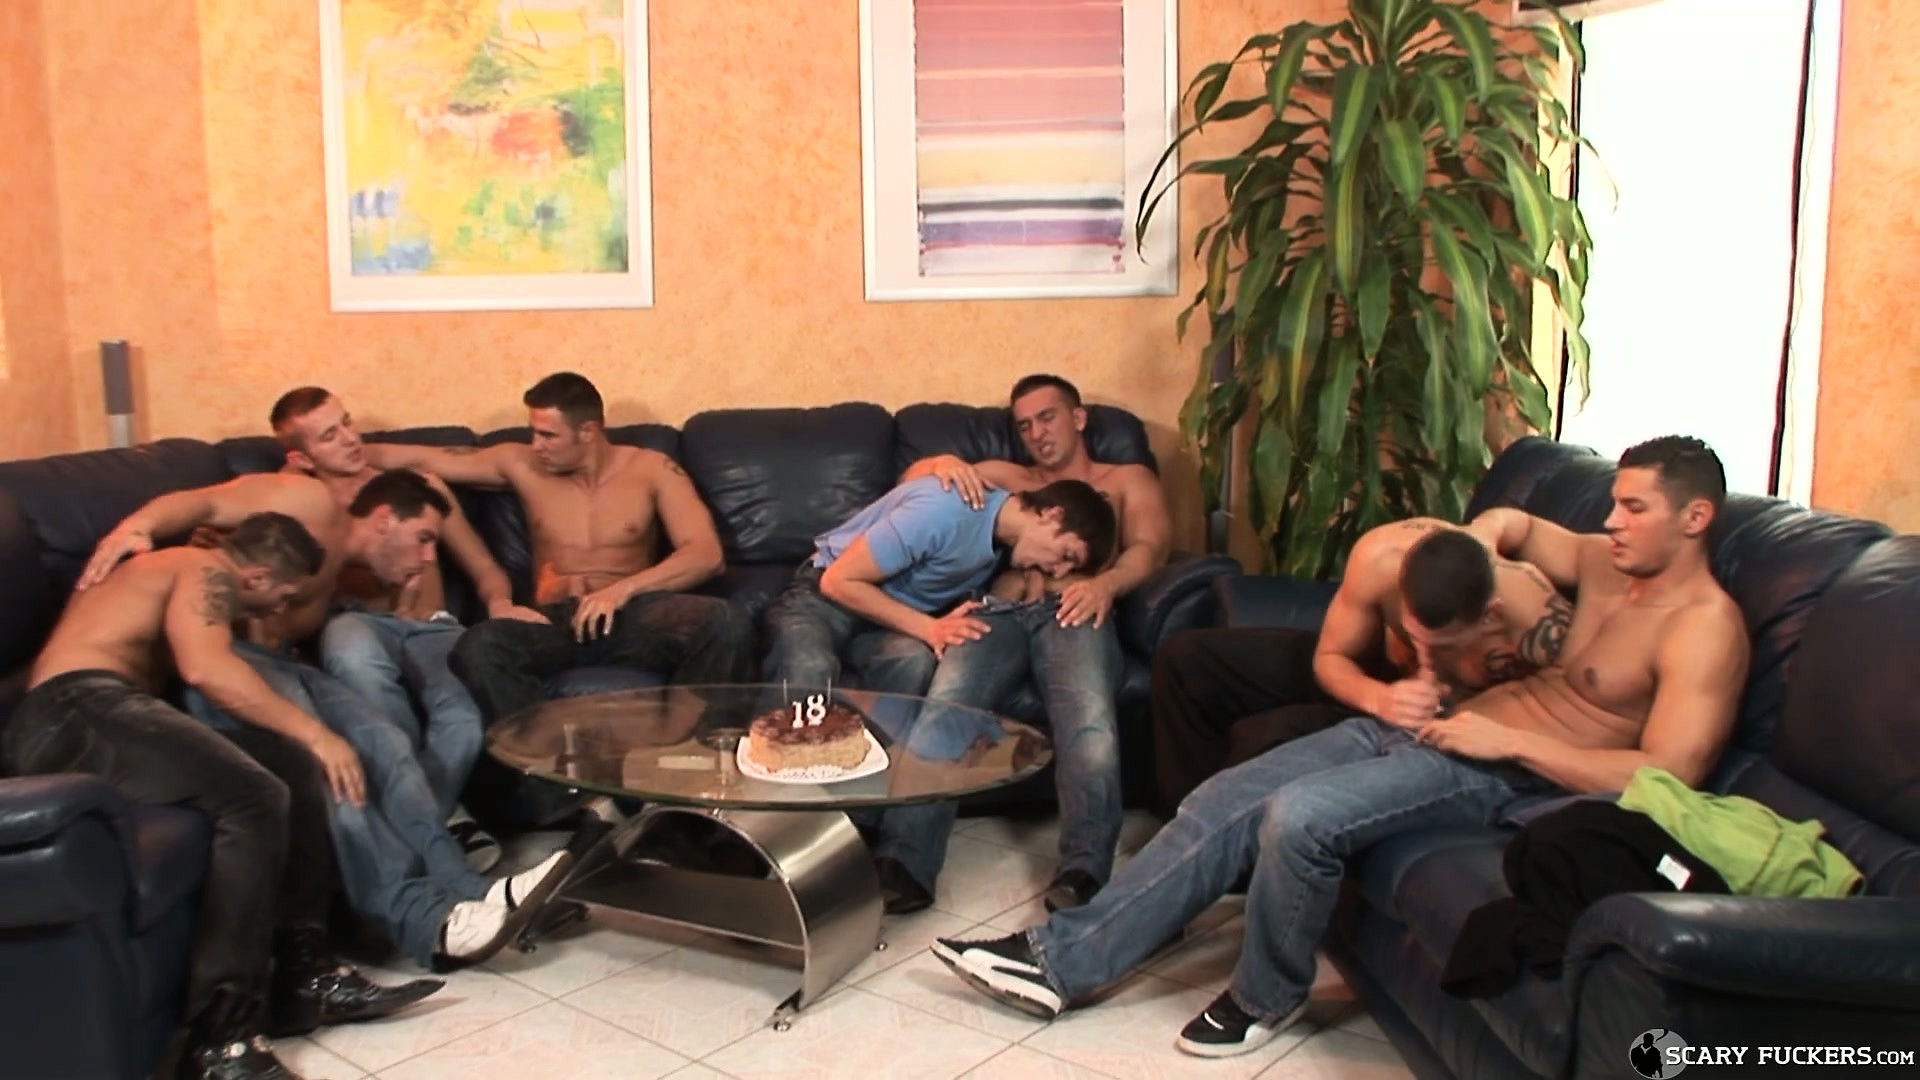 Porno Video of The Boys At The Birthday Party Break The 18 Year Old's Virgin Ass Cherry